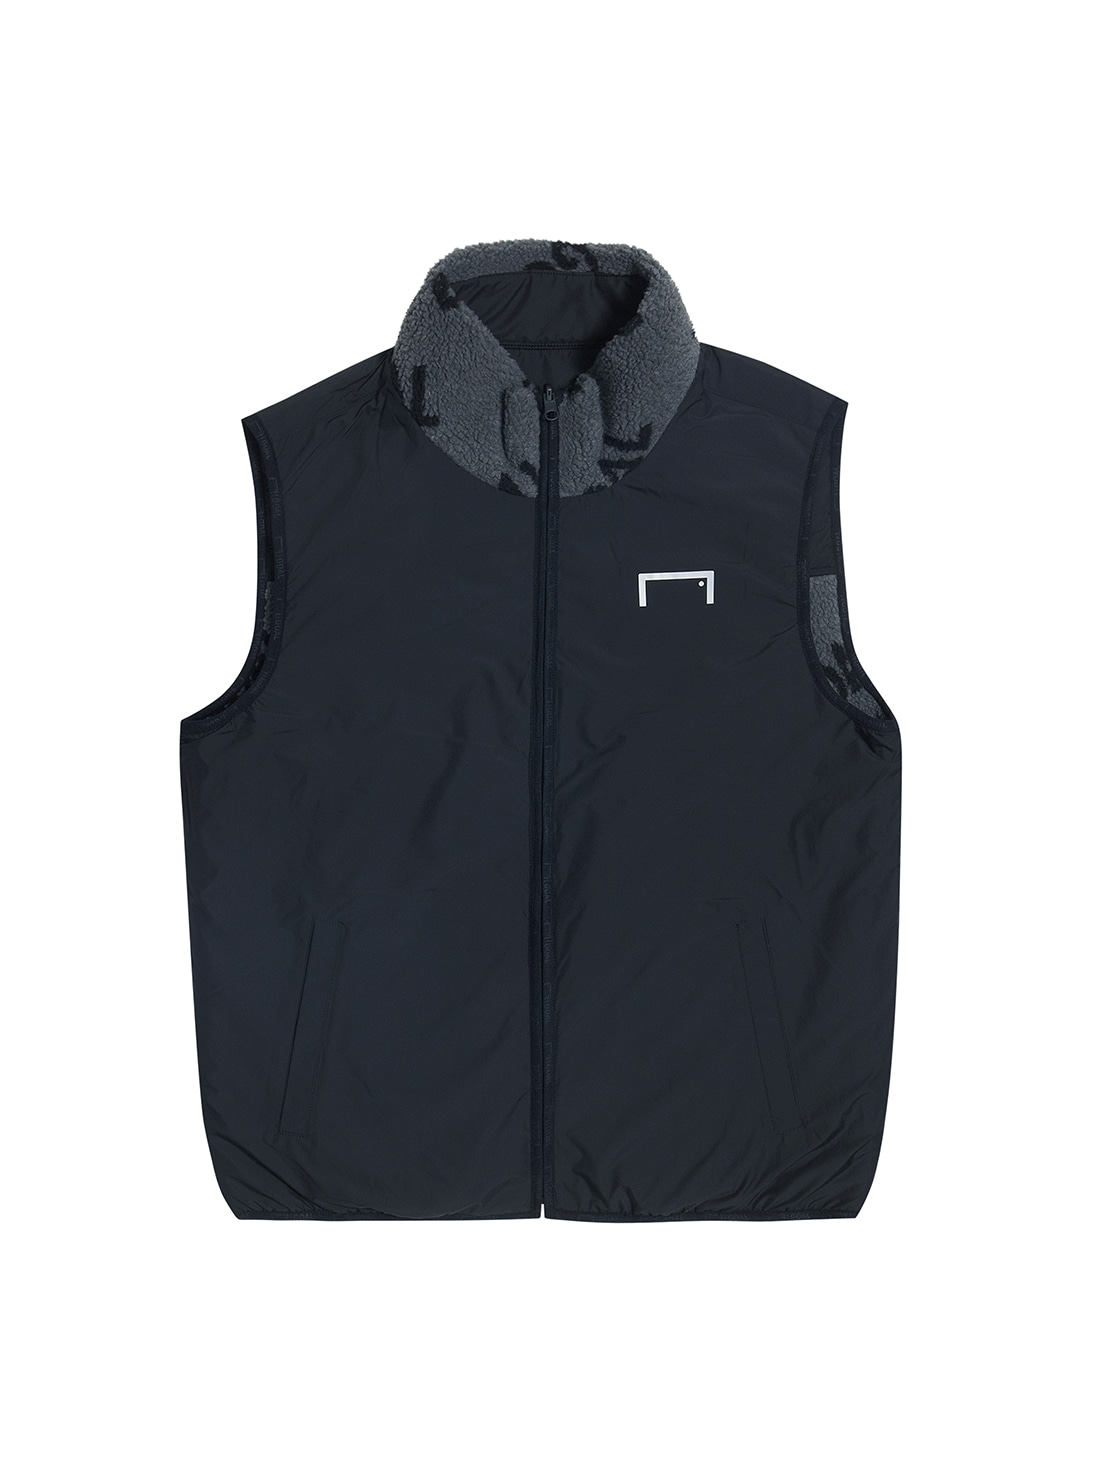 GOALSTUDIO (L)REVERSIBLE FLEECE VEST - GREY/BLACK